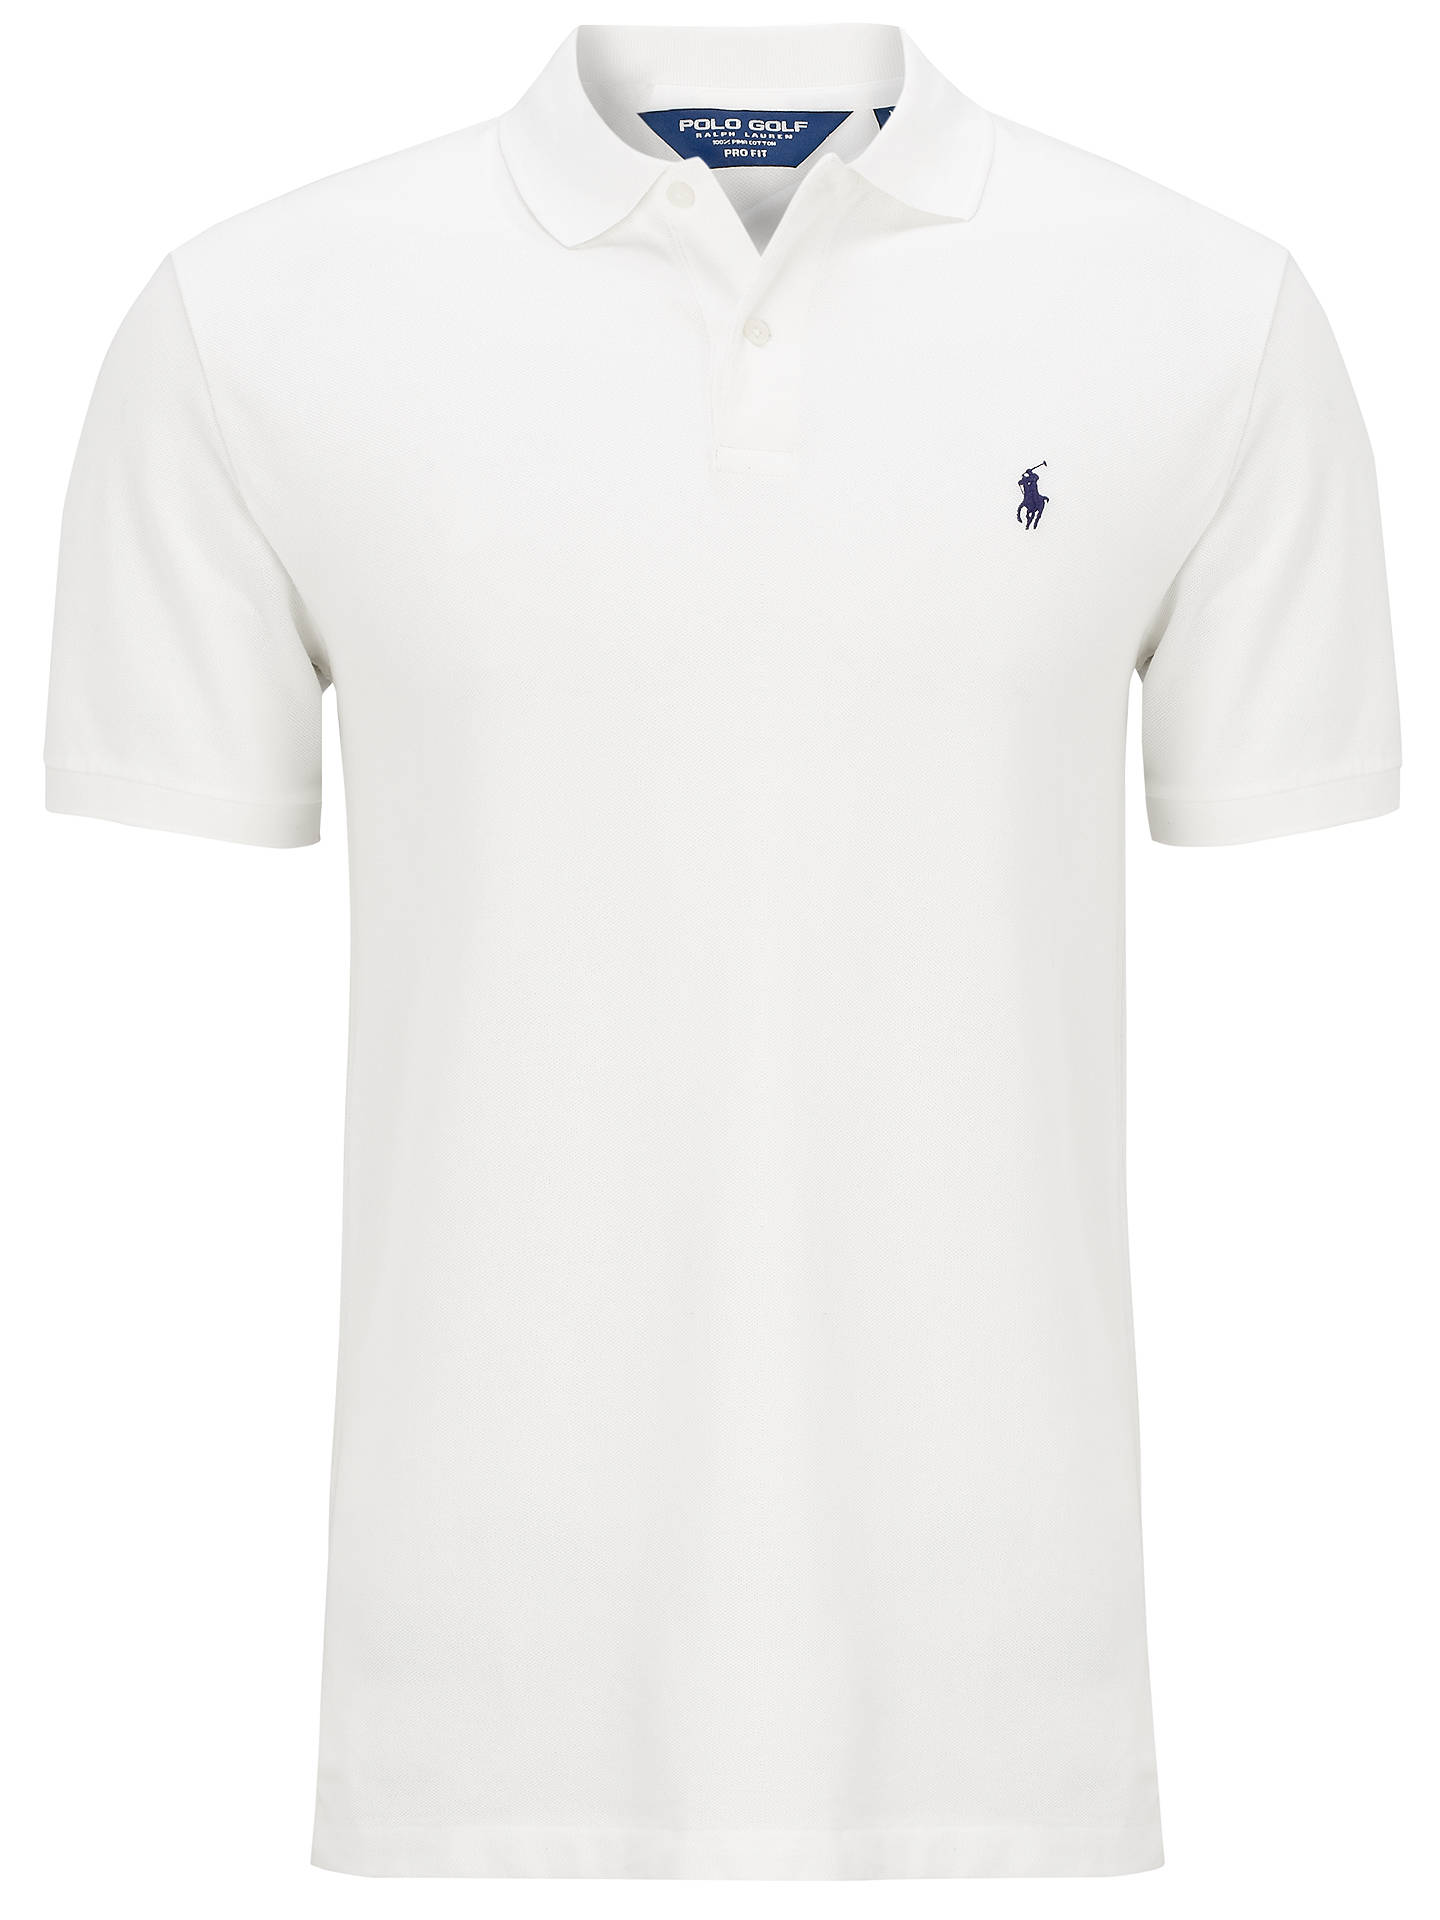 b989b06f0 Buy Polo Golf by Ralph Lauren Pro-Fit Polo Shirt, White, M Online ...